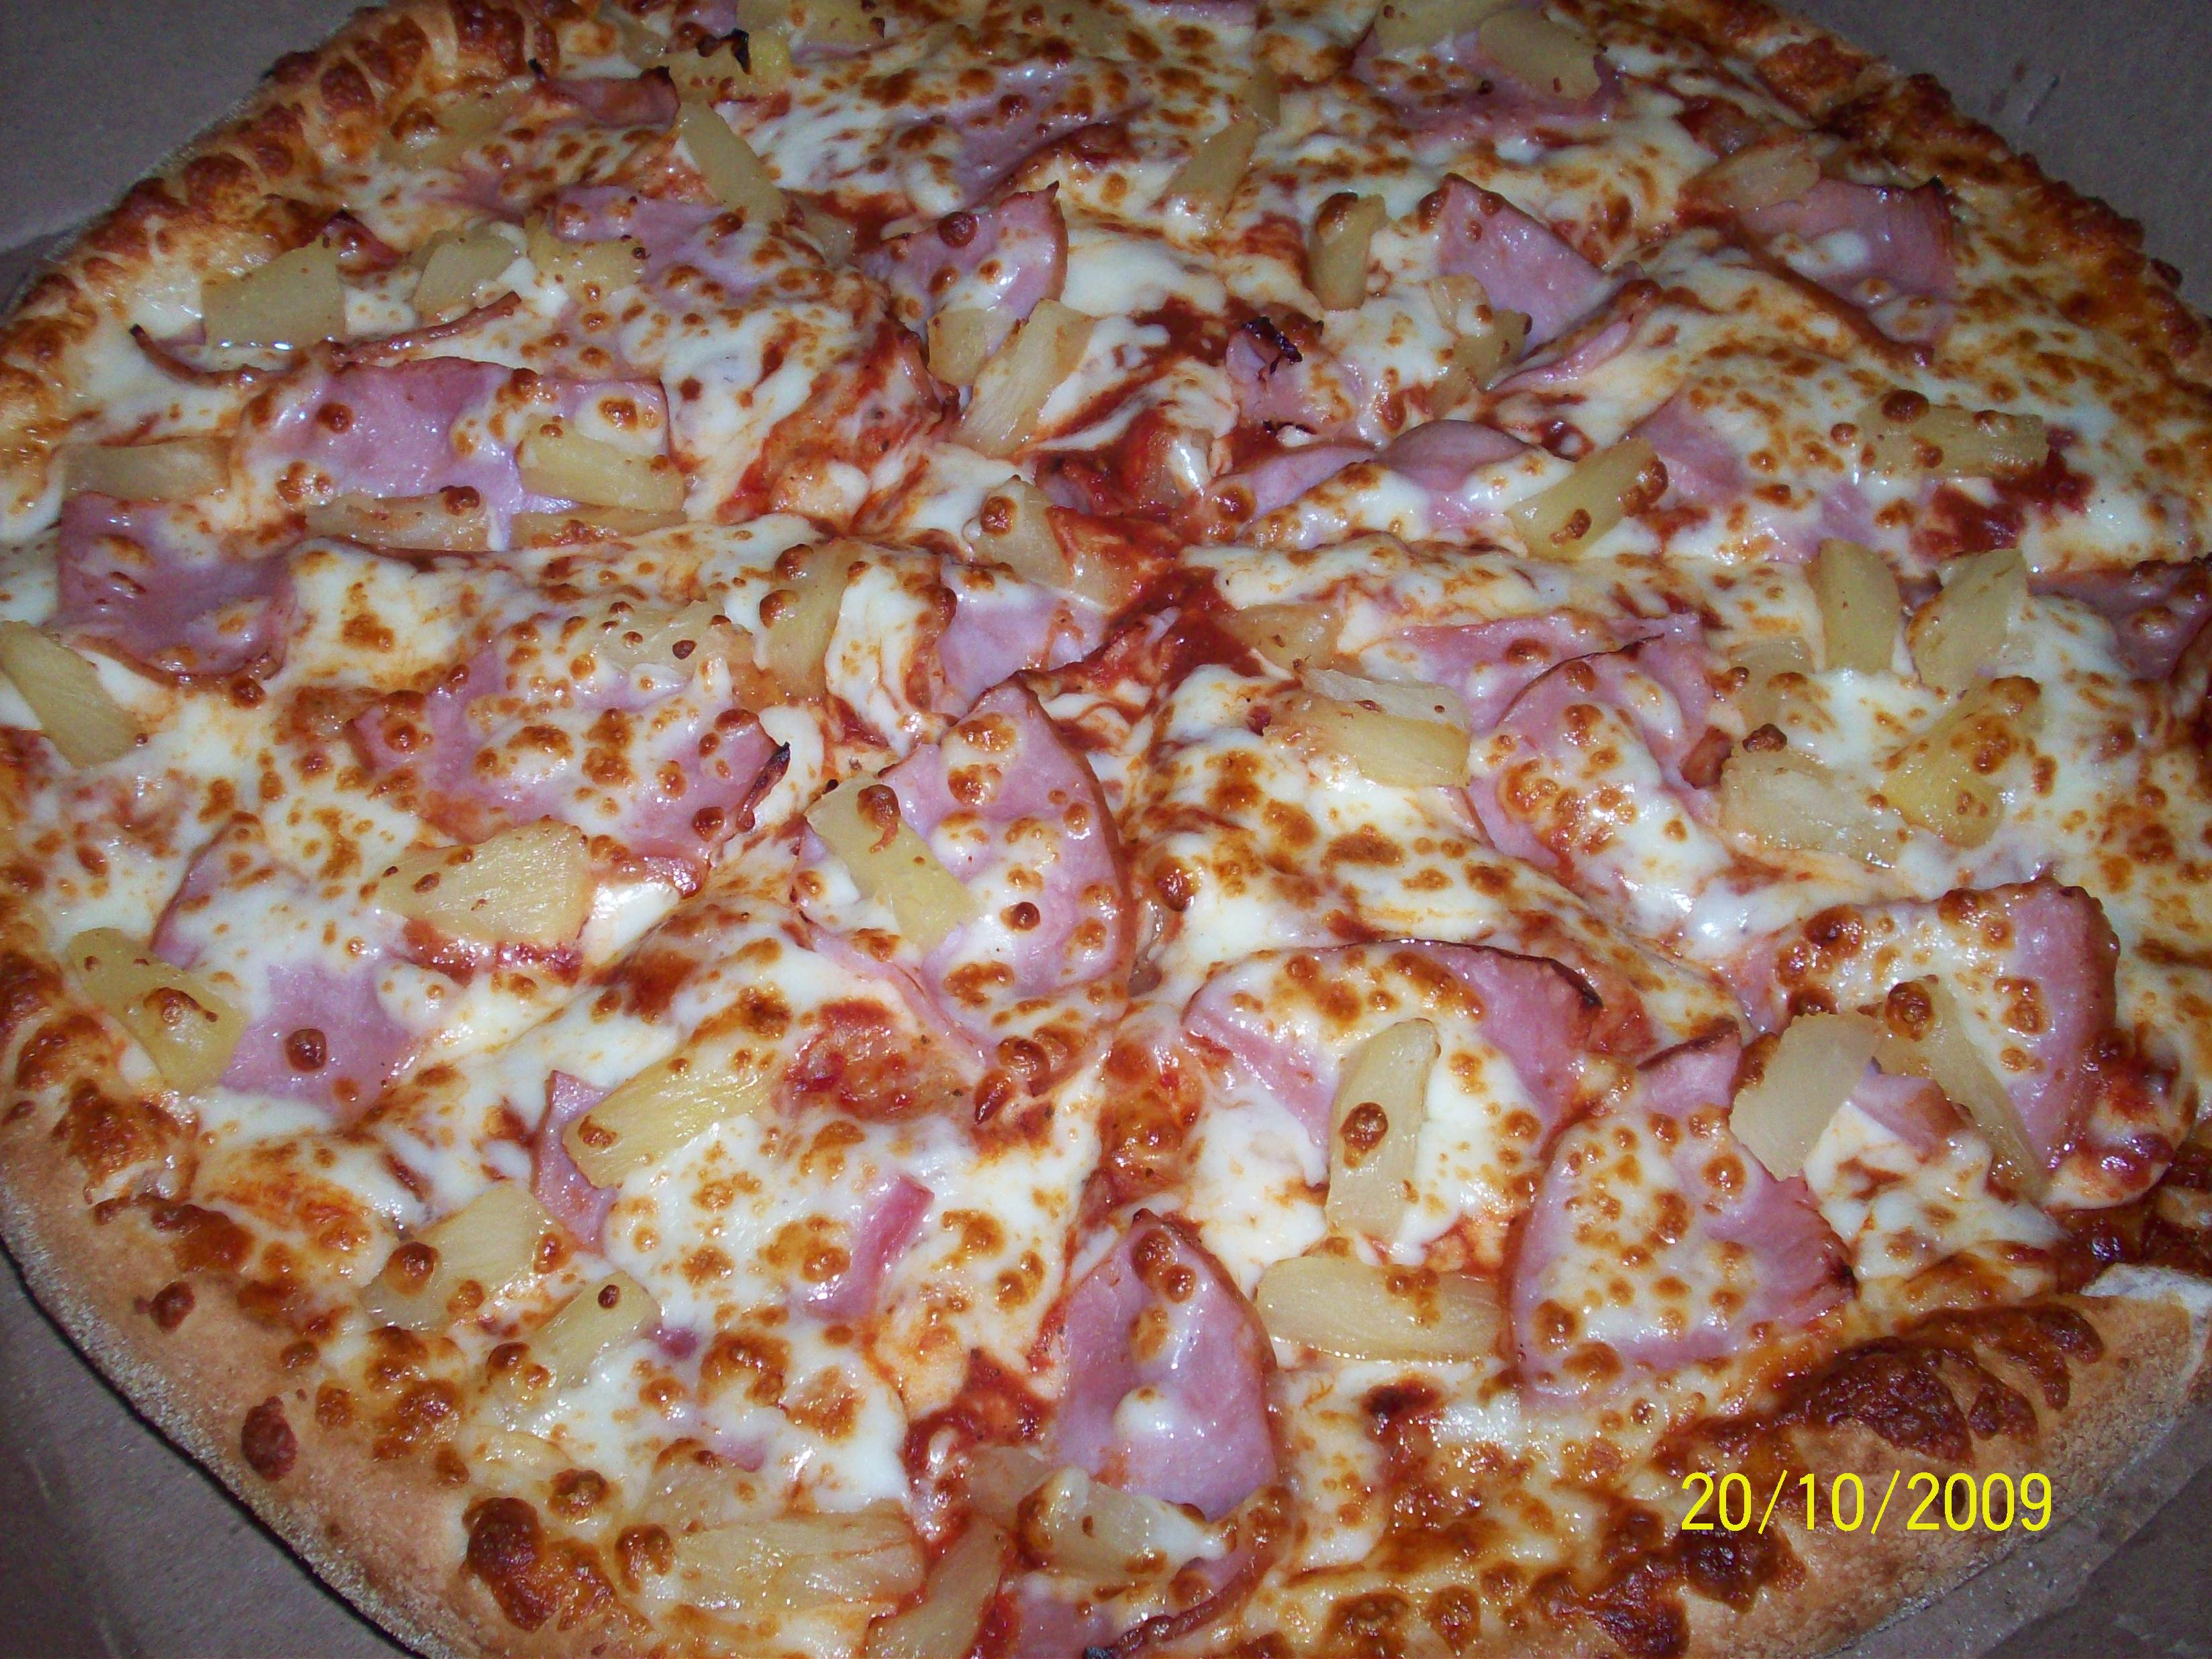 http://foodloader.net/cutie_2009-10-20_Hawaiian_Pizza.jpg